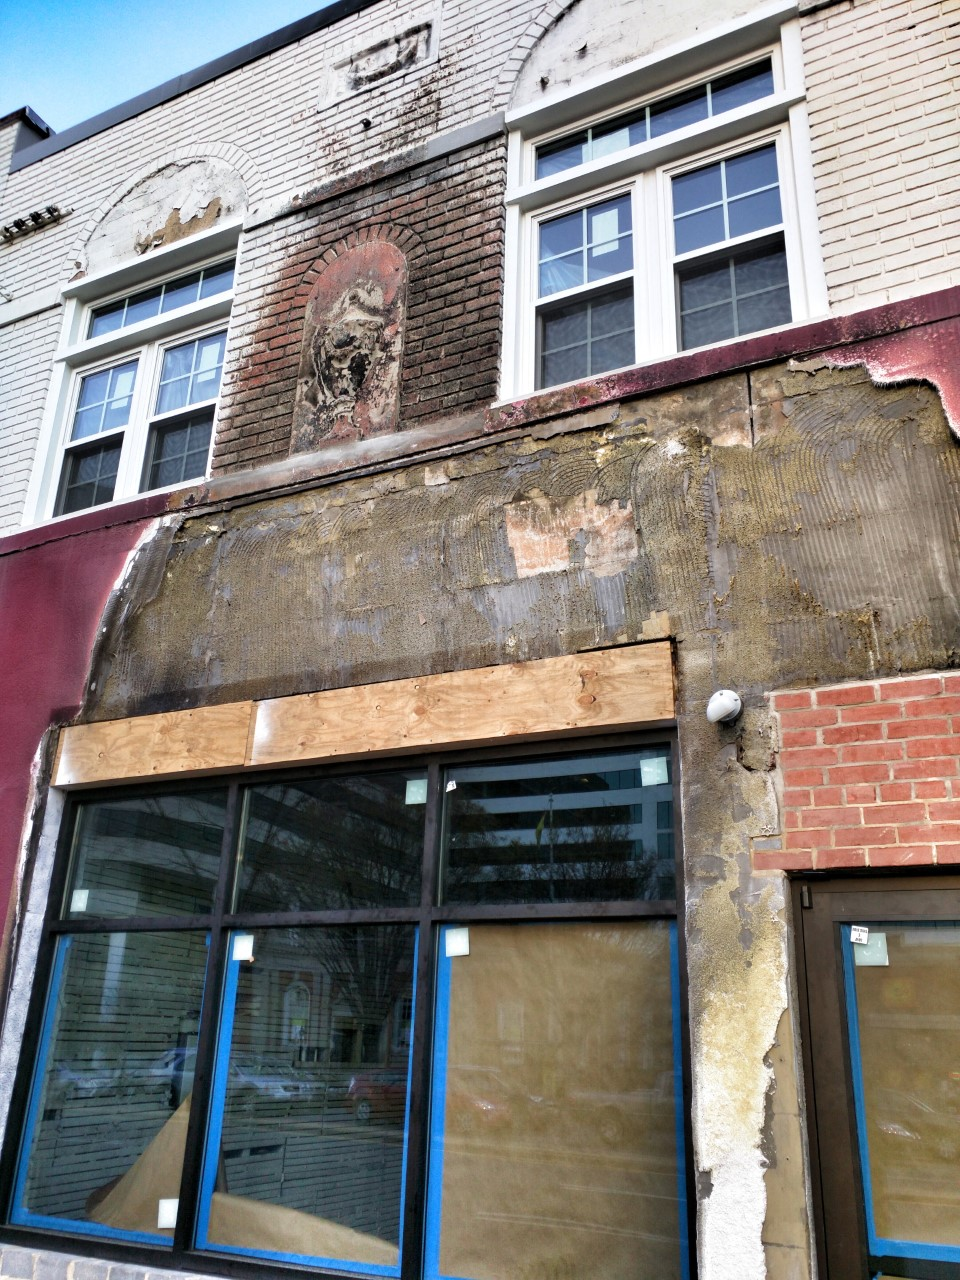 east moco: bombay gaylord restaurant renovations underway in